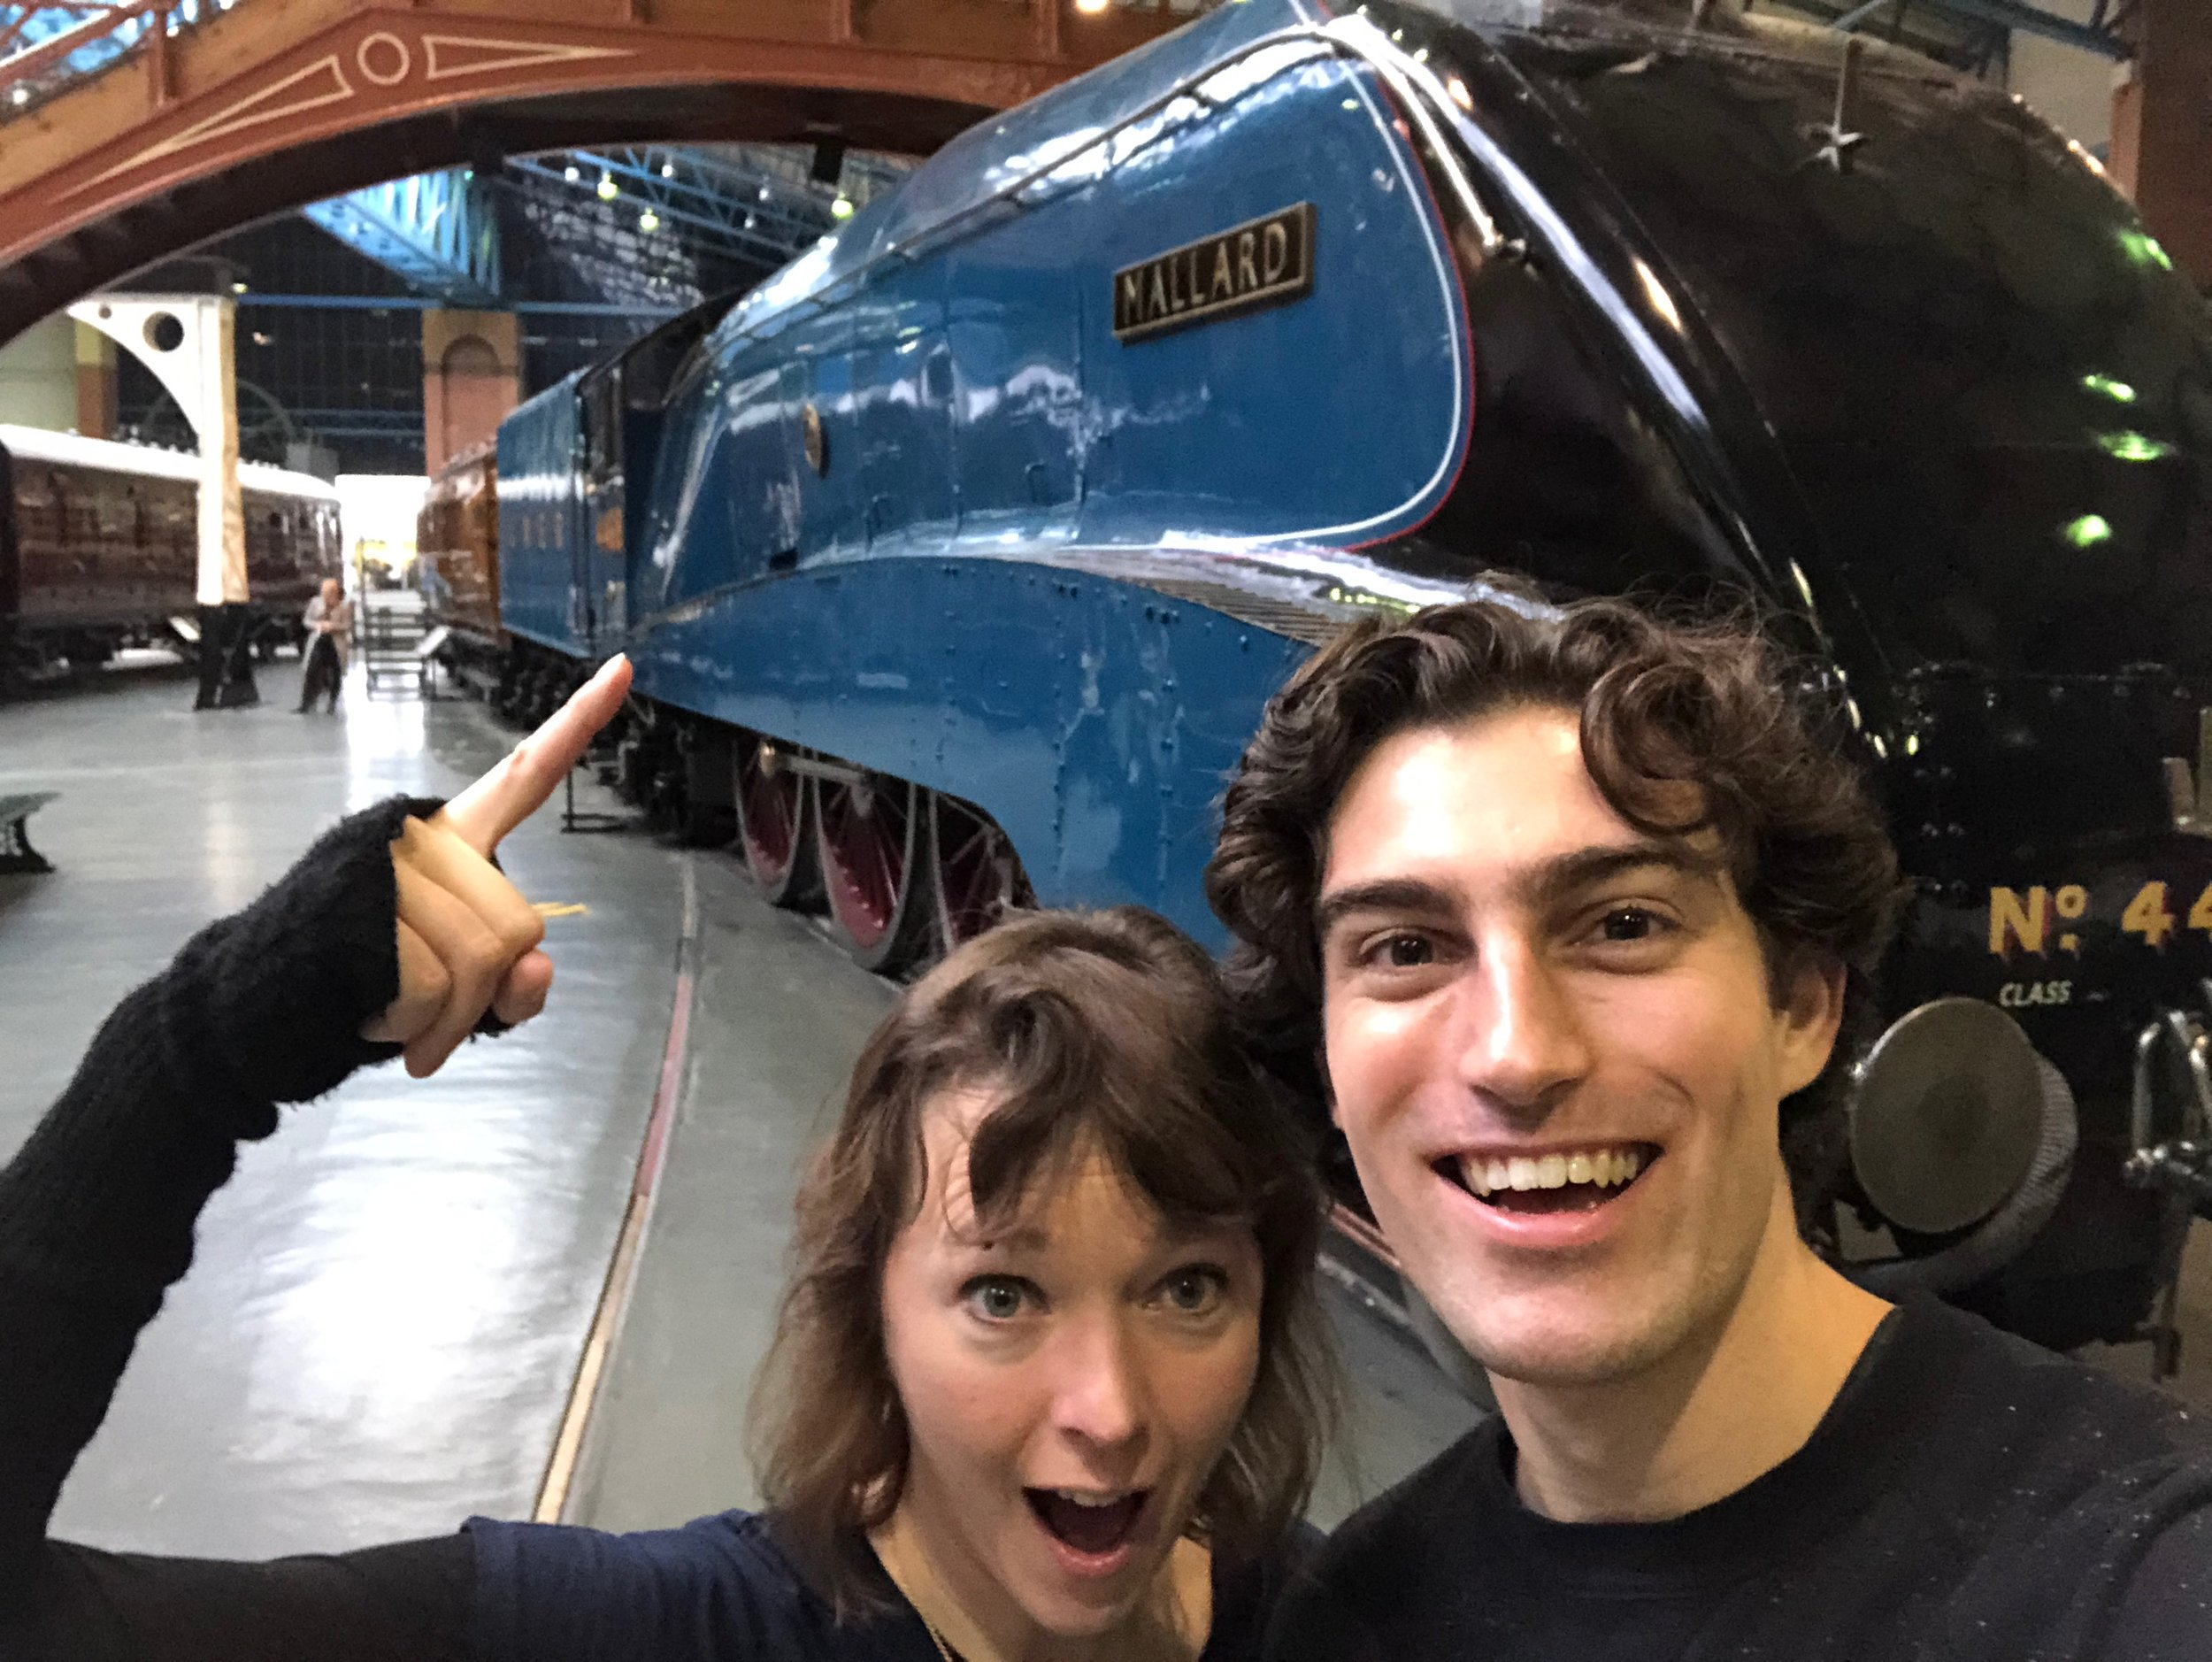 Me and my co-author Sam Sedgman at the National Rail Museum in York